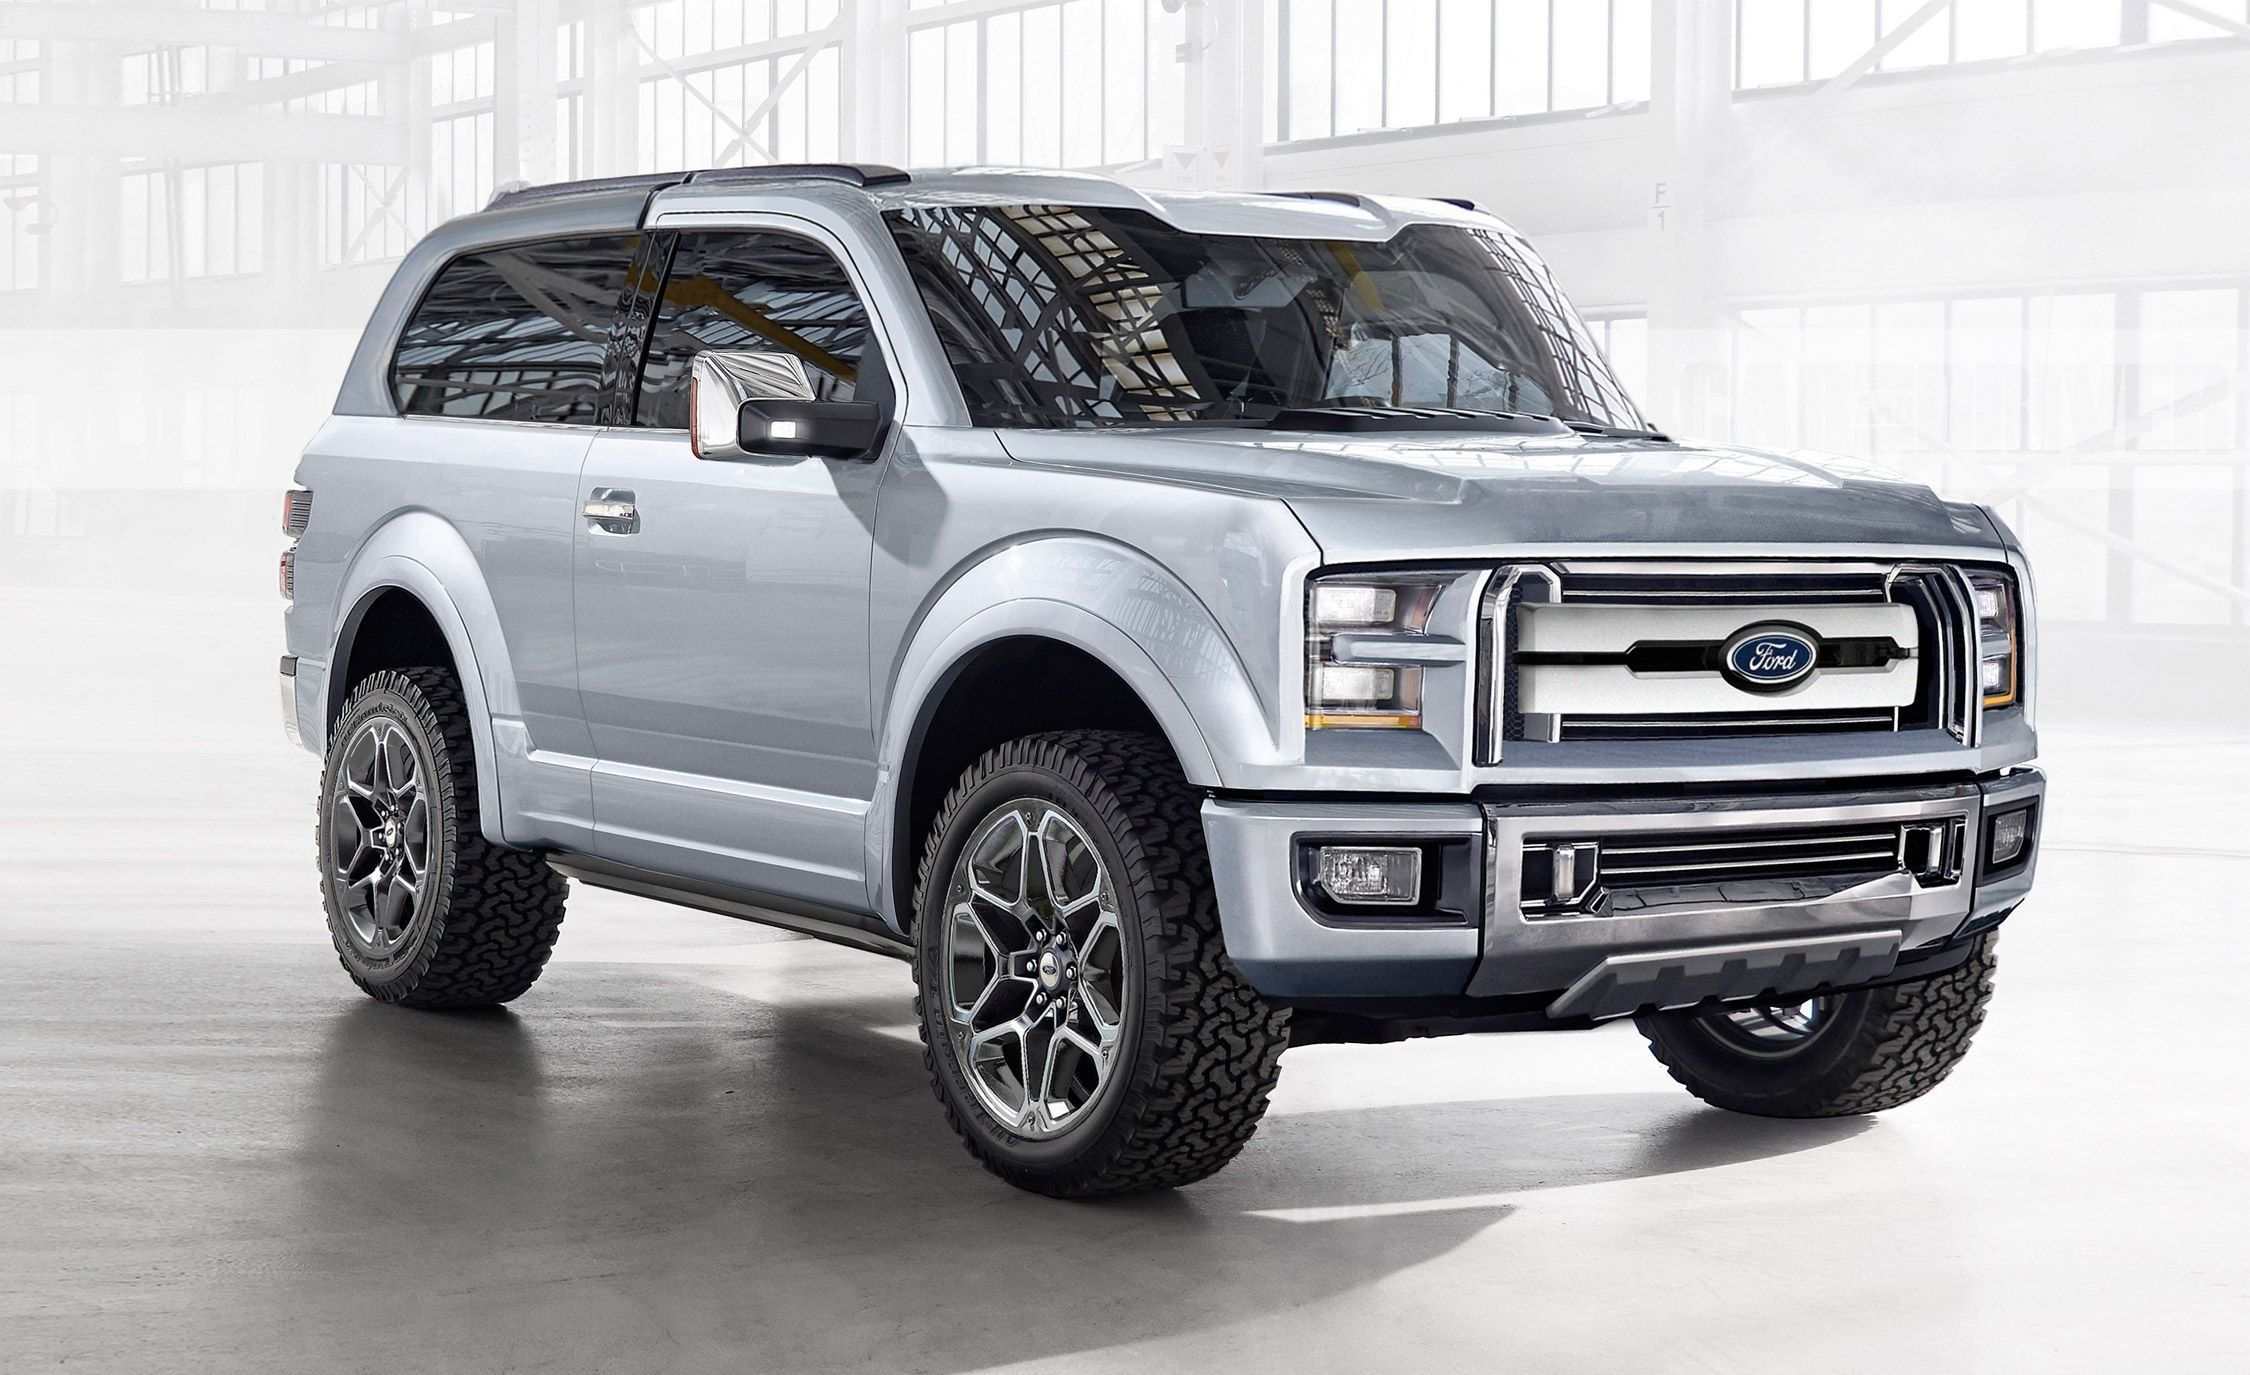 Images Of 2020 Ford Bronco Review And Price Di 2020 Ford Bronco Truk Ford Suv